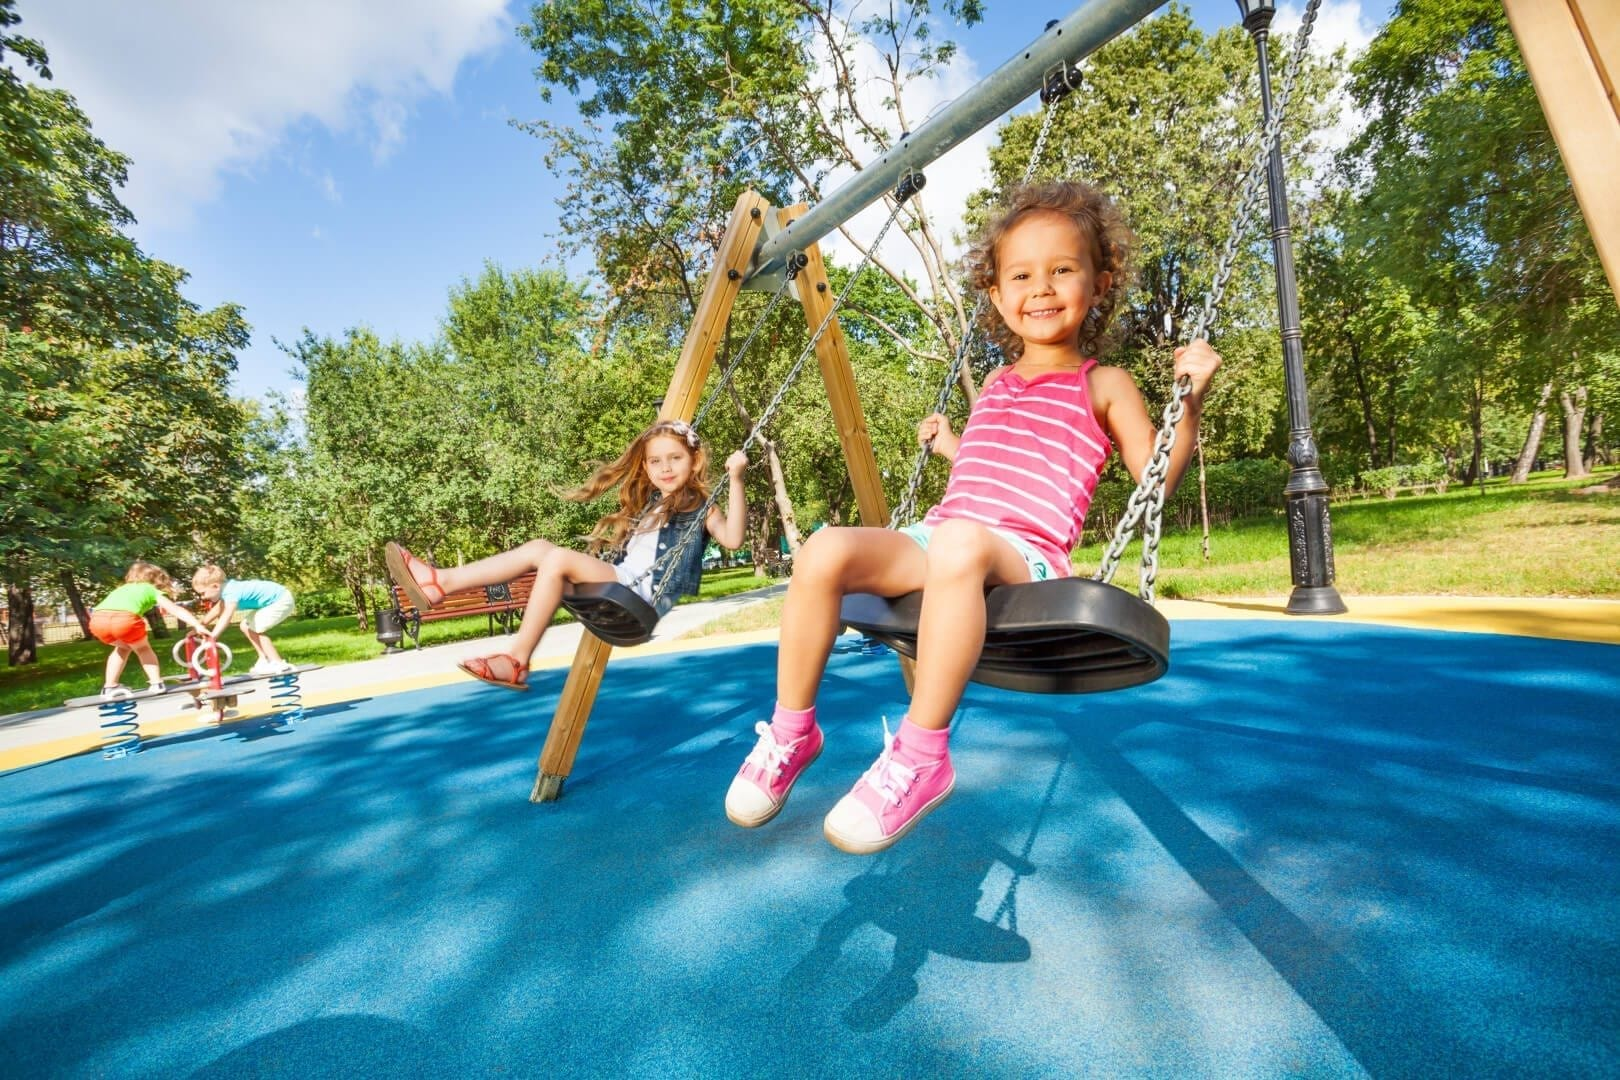 ea477f8f0 7 Unique NJ Playgrounds to Visit this Spring - Best of NJ: The Best ...